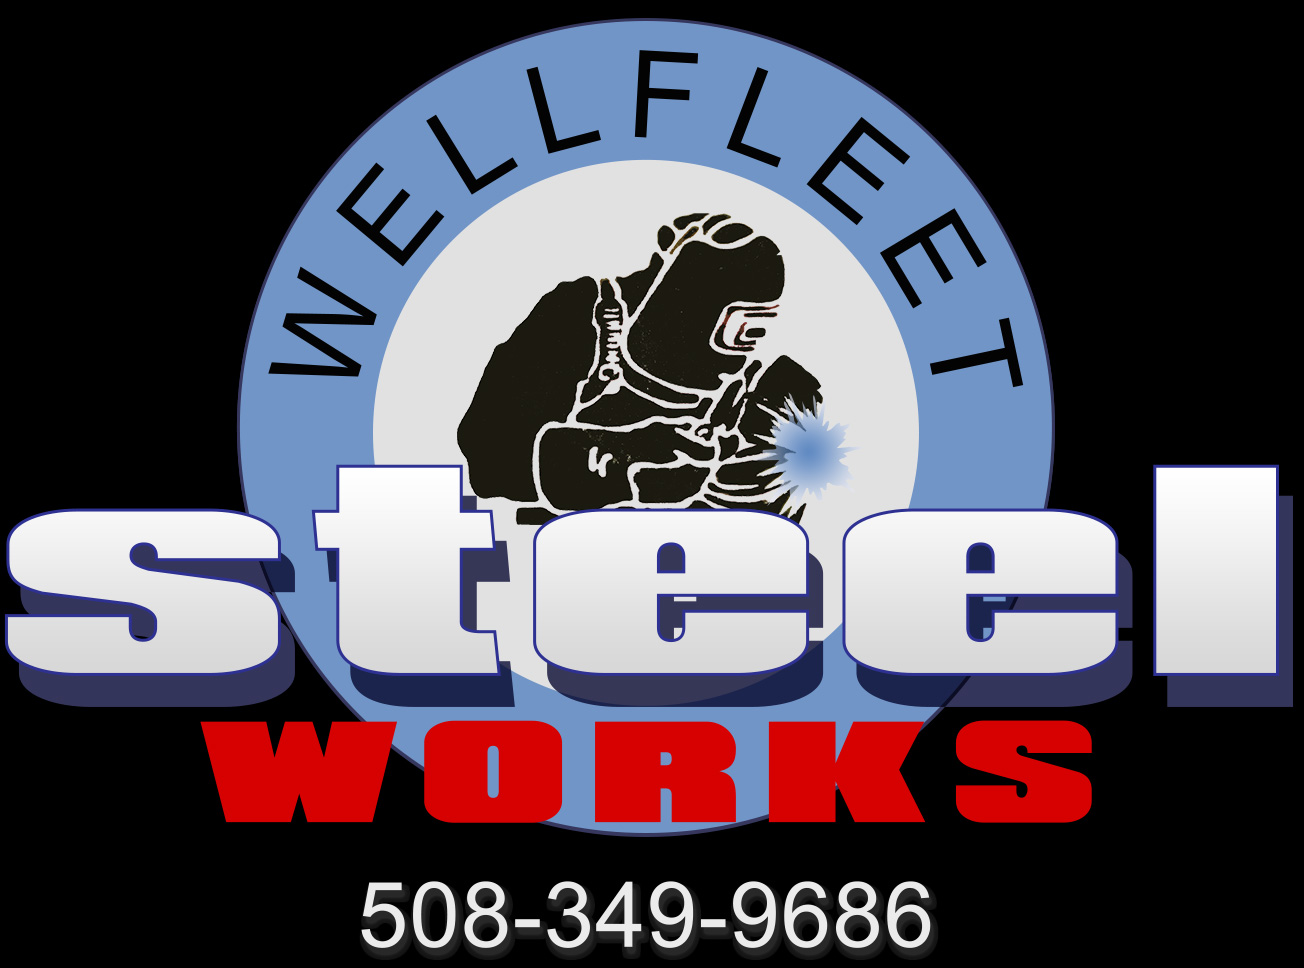 Wellfleet Steel Works Logo